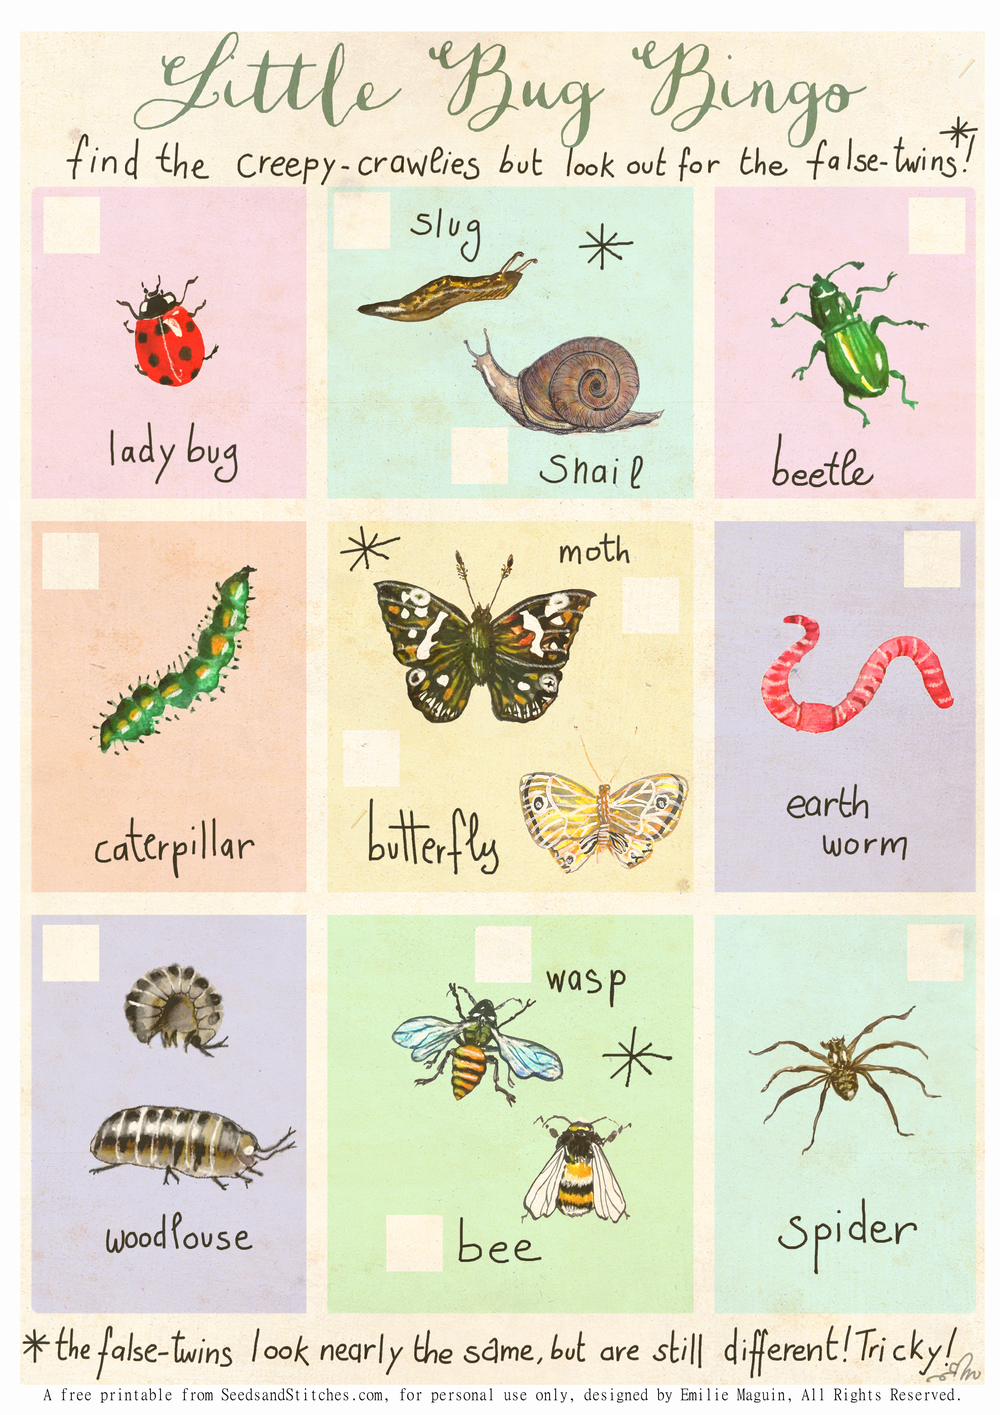 Nature Bingo for bigger kids by Emilie Maguin | Seeds and Stitches blog